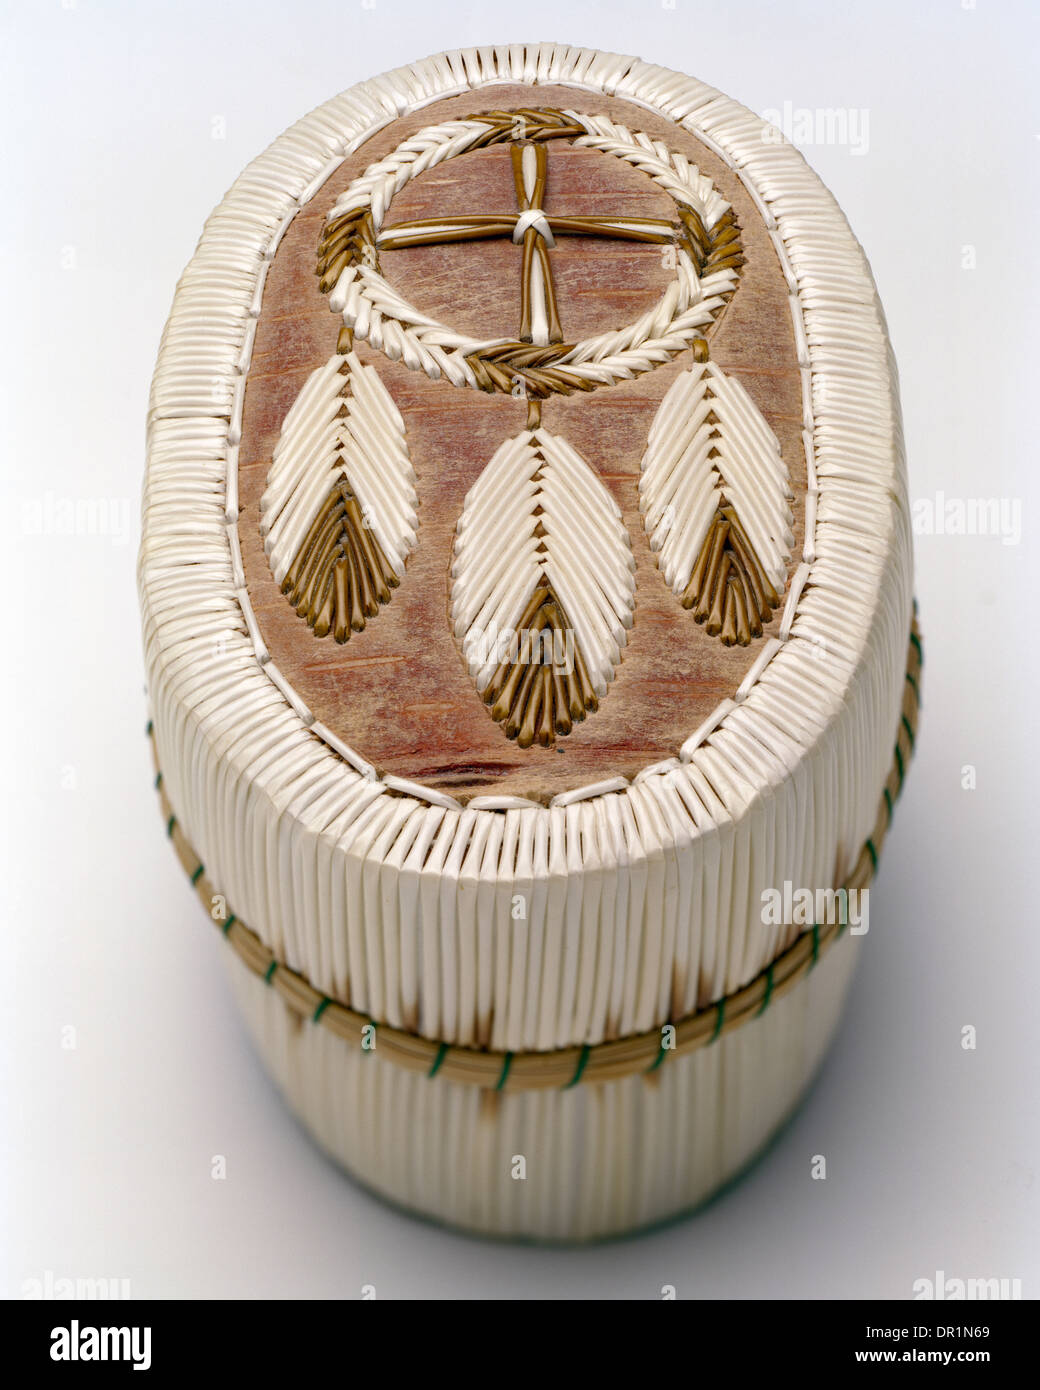 Chippewa quill box with dreamcatcher motif - Stock Image